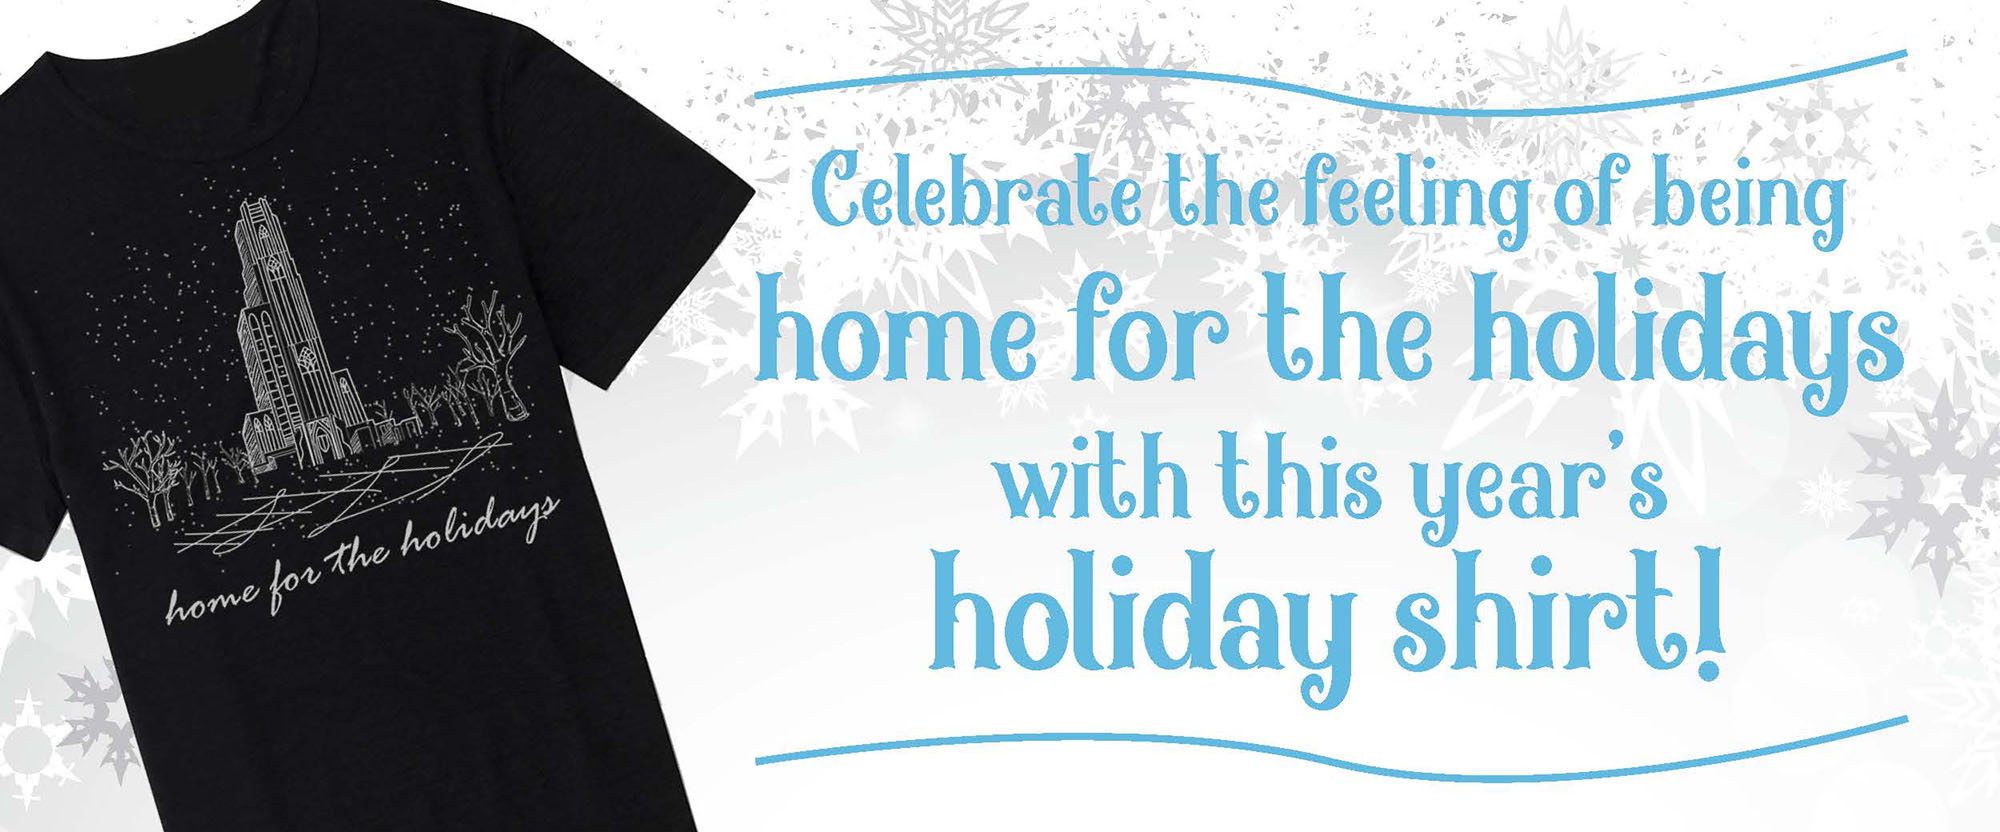 get your holiday shirt today